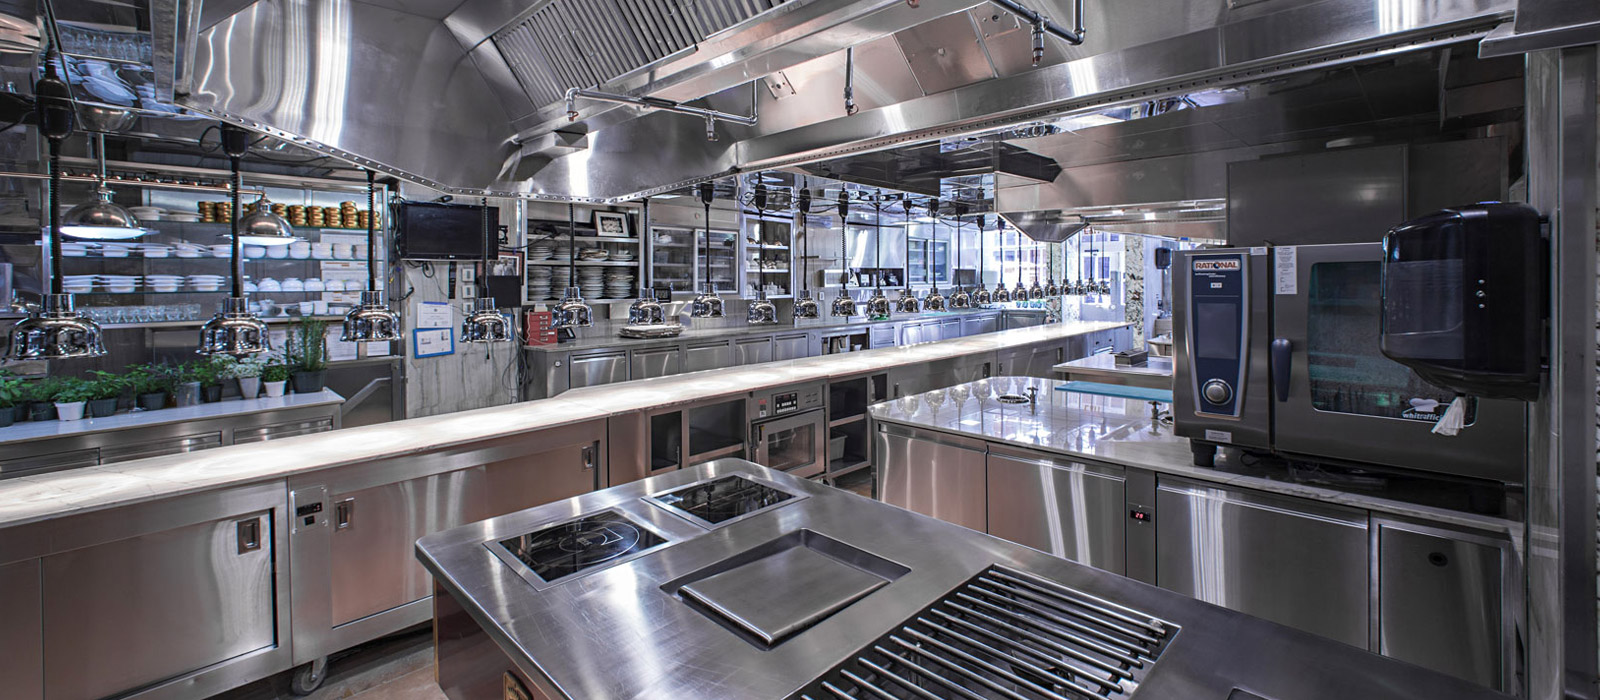 3 reasons to hire a commercial kitchen specialist - mrg construction